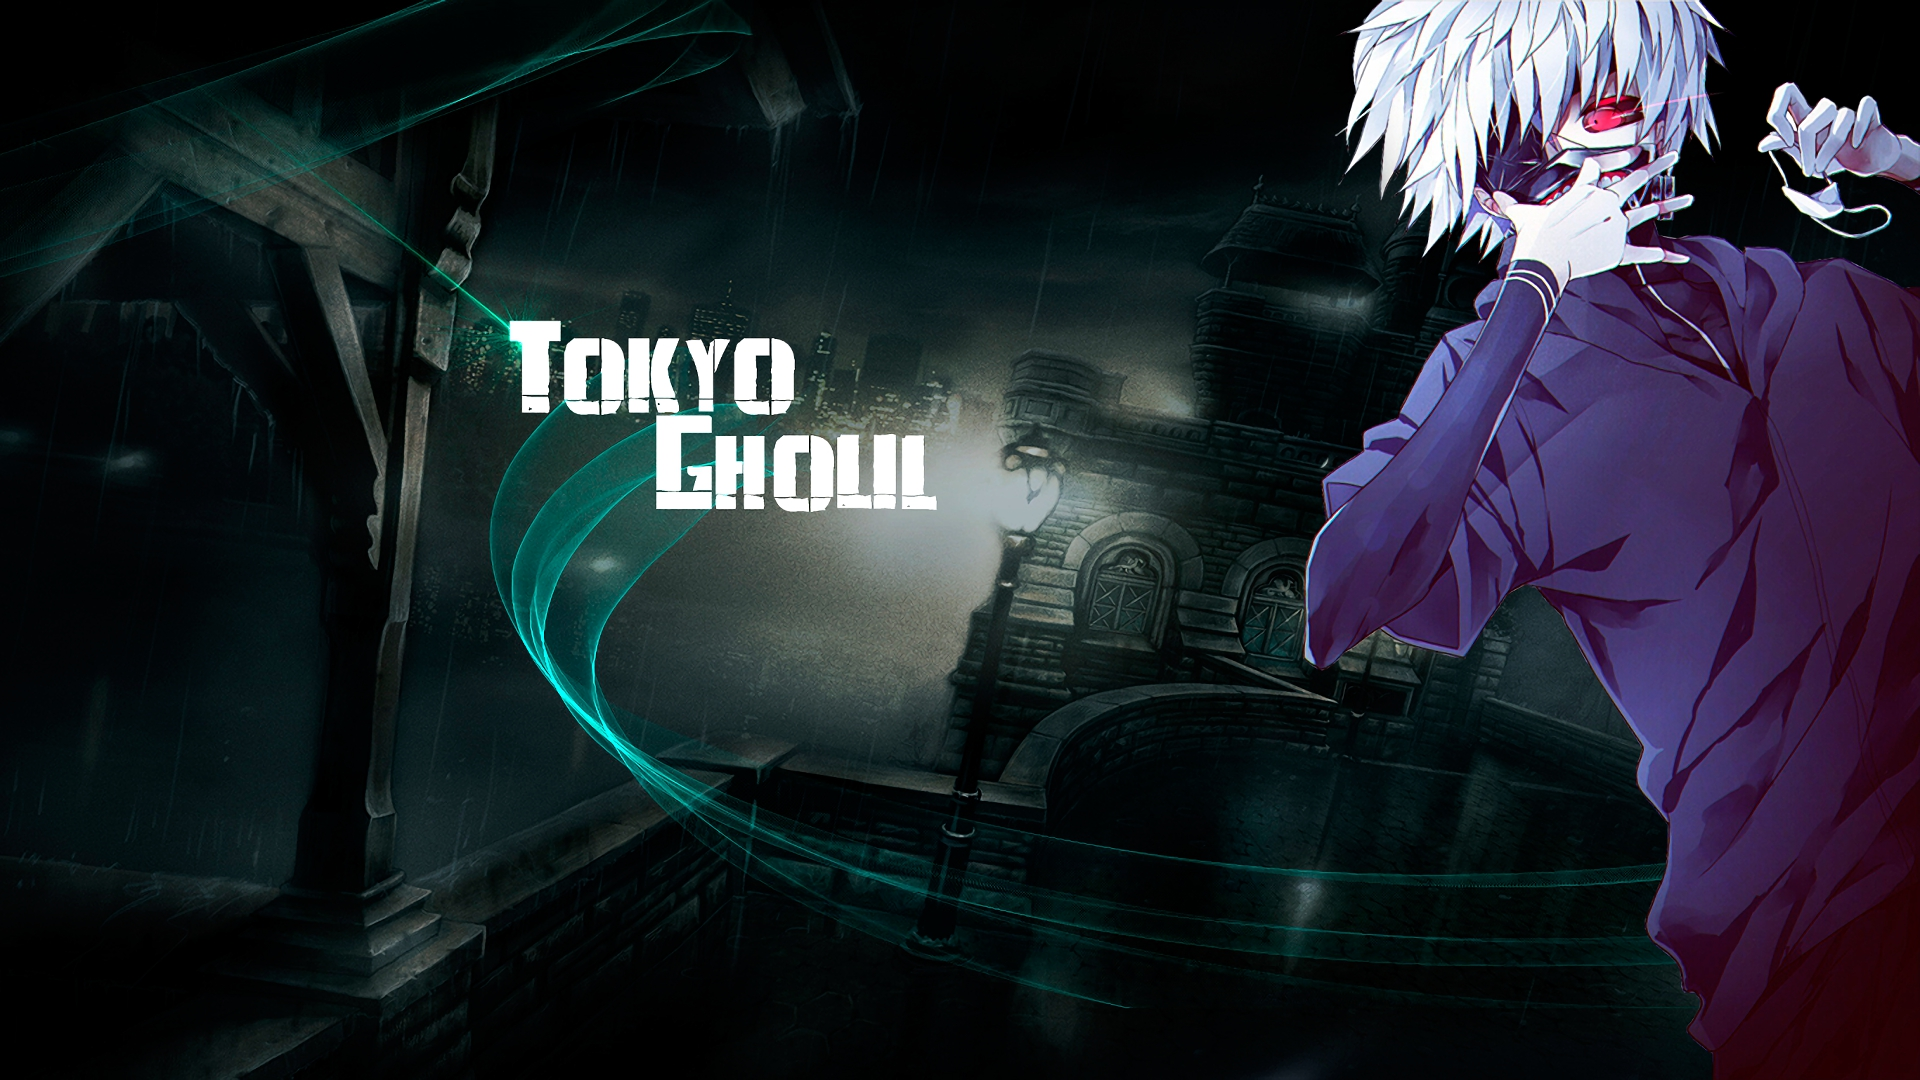 Fight Like A Girl Computer Wallpaper Tokyo Ghoul Hd Wallpaper Background Image 1920x1080